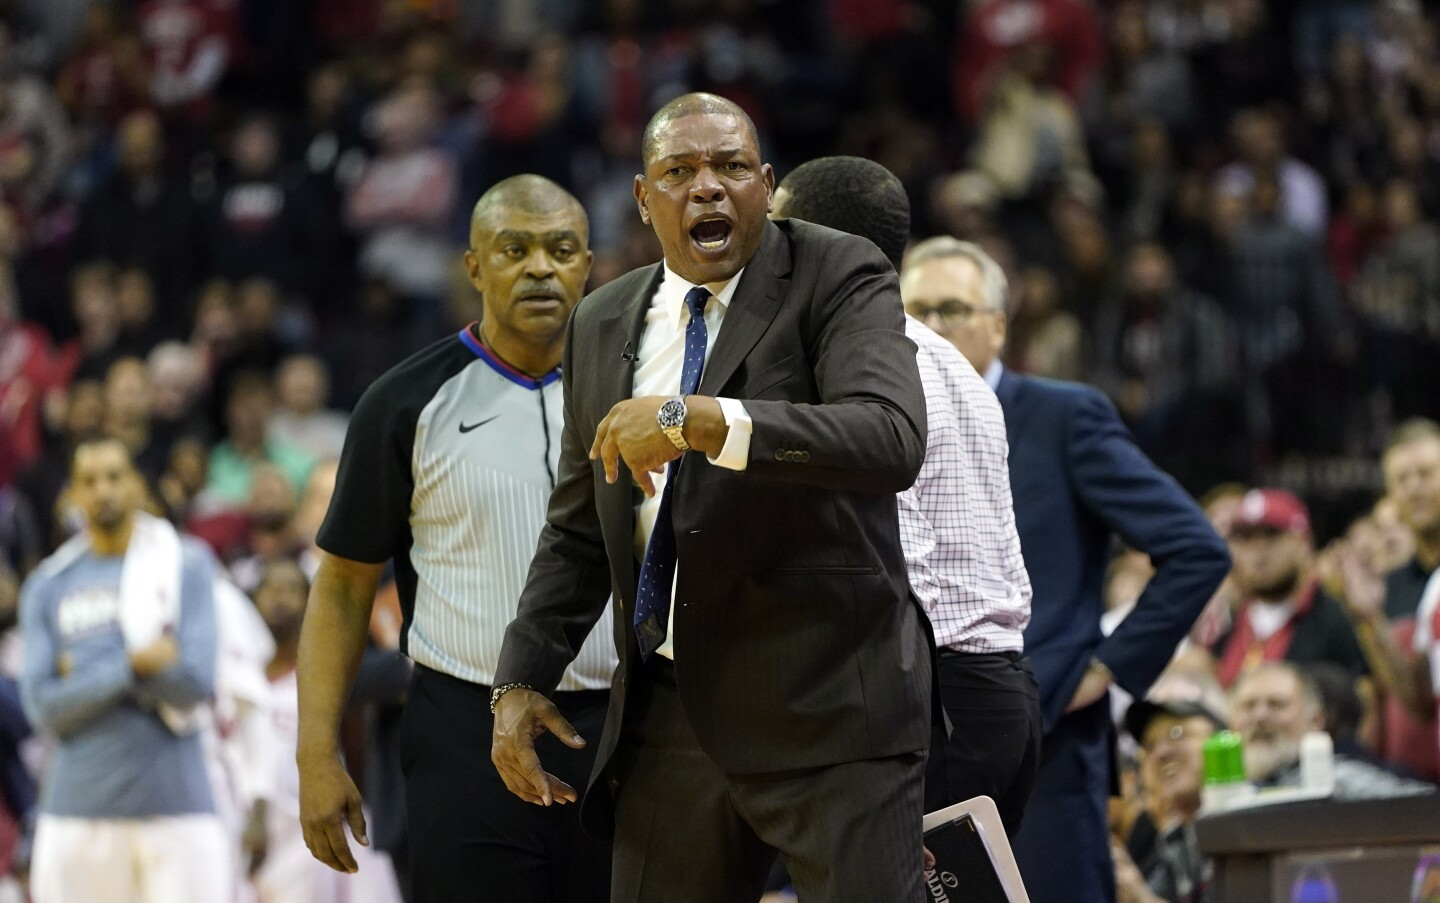 LA Clippers coach Doc Rivers yells at an official before being ejected from the game during the second half of an NBA basketball game against the Houston Rockets Wednesday, Nov. 13, 2019, in Houston. The Rockets won 102-93. (AP Photo/David J. Phillip)